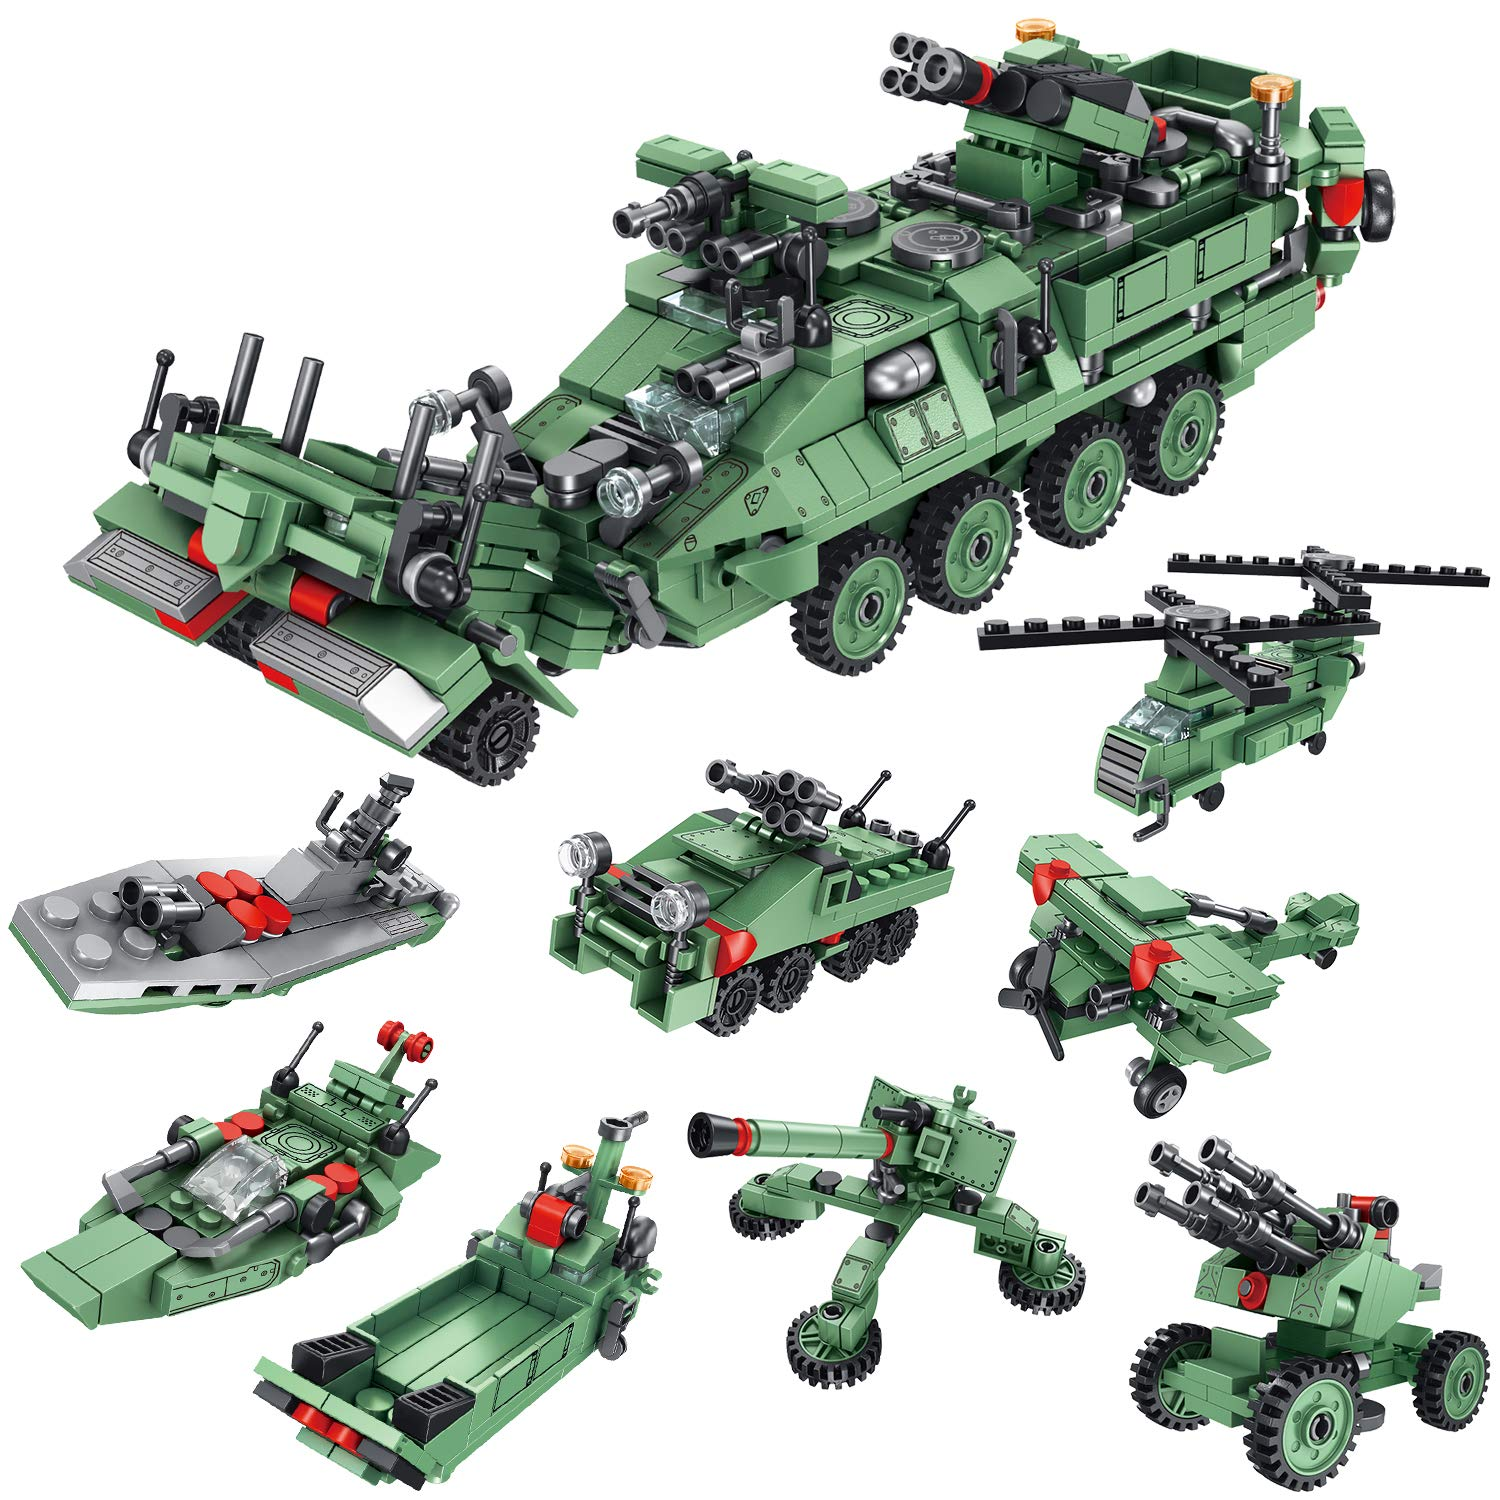 Model Building Aircraft Tank Armored Vehicle Instrument Table Weapons Original Toy Swat Police Military Weapons Accessories Compatible